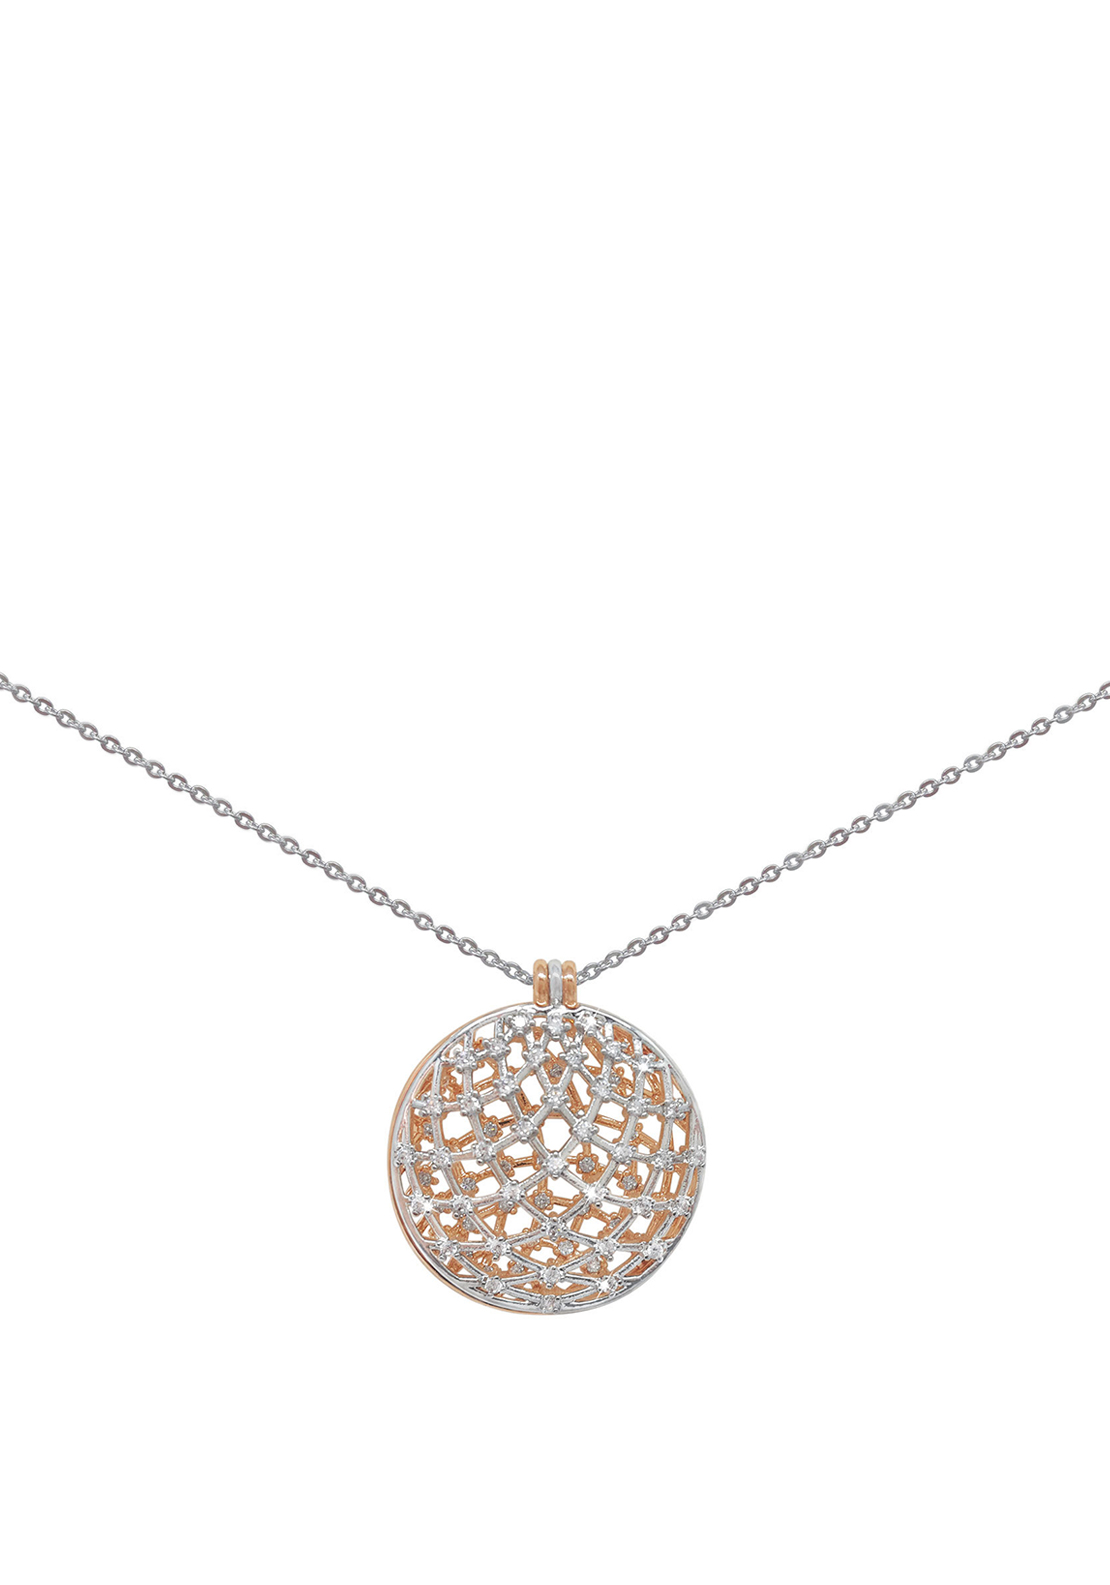 Tipperary Crystal Two Tone Dome Pendant Necklace, Silver